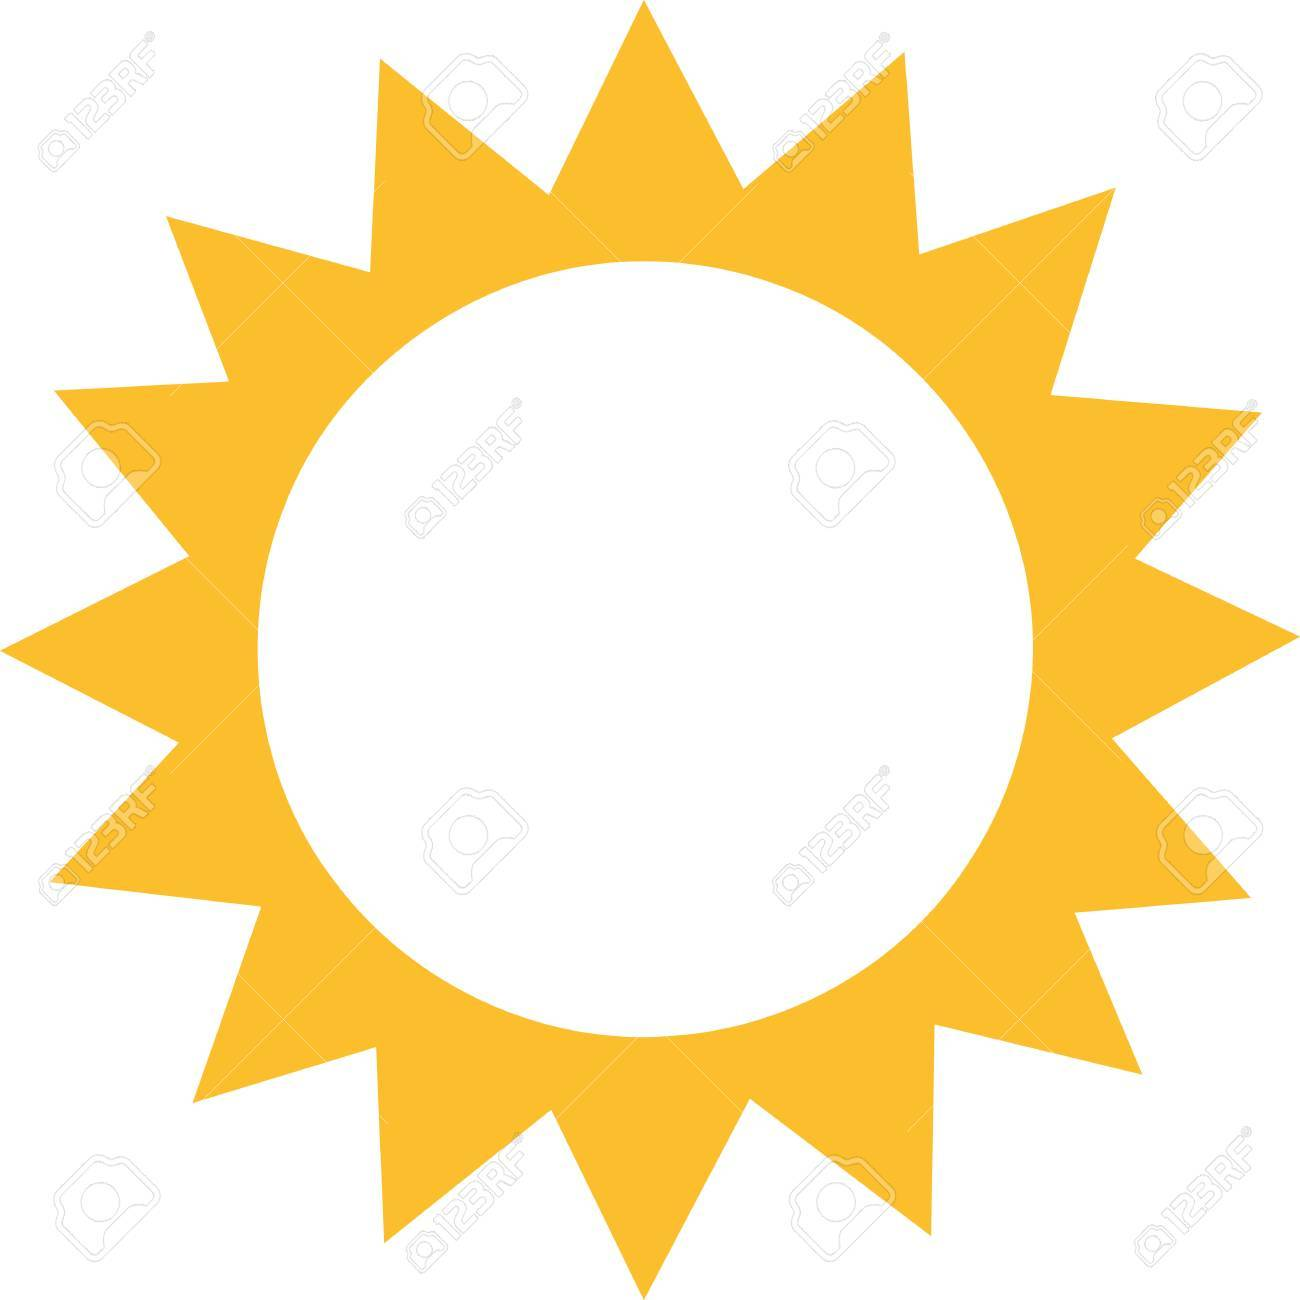 sun icon with just sunrays royalty free cliparts vectors and stock rh 123rf com